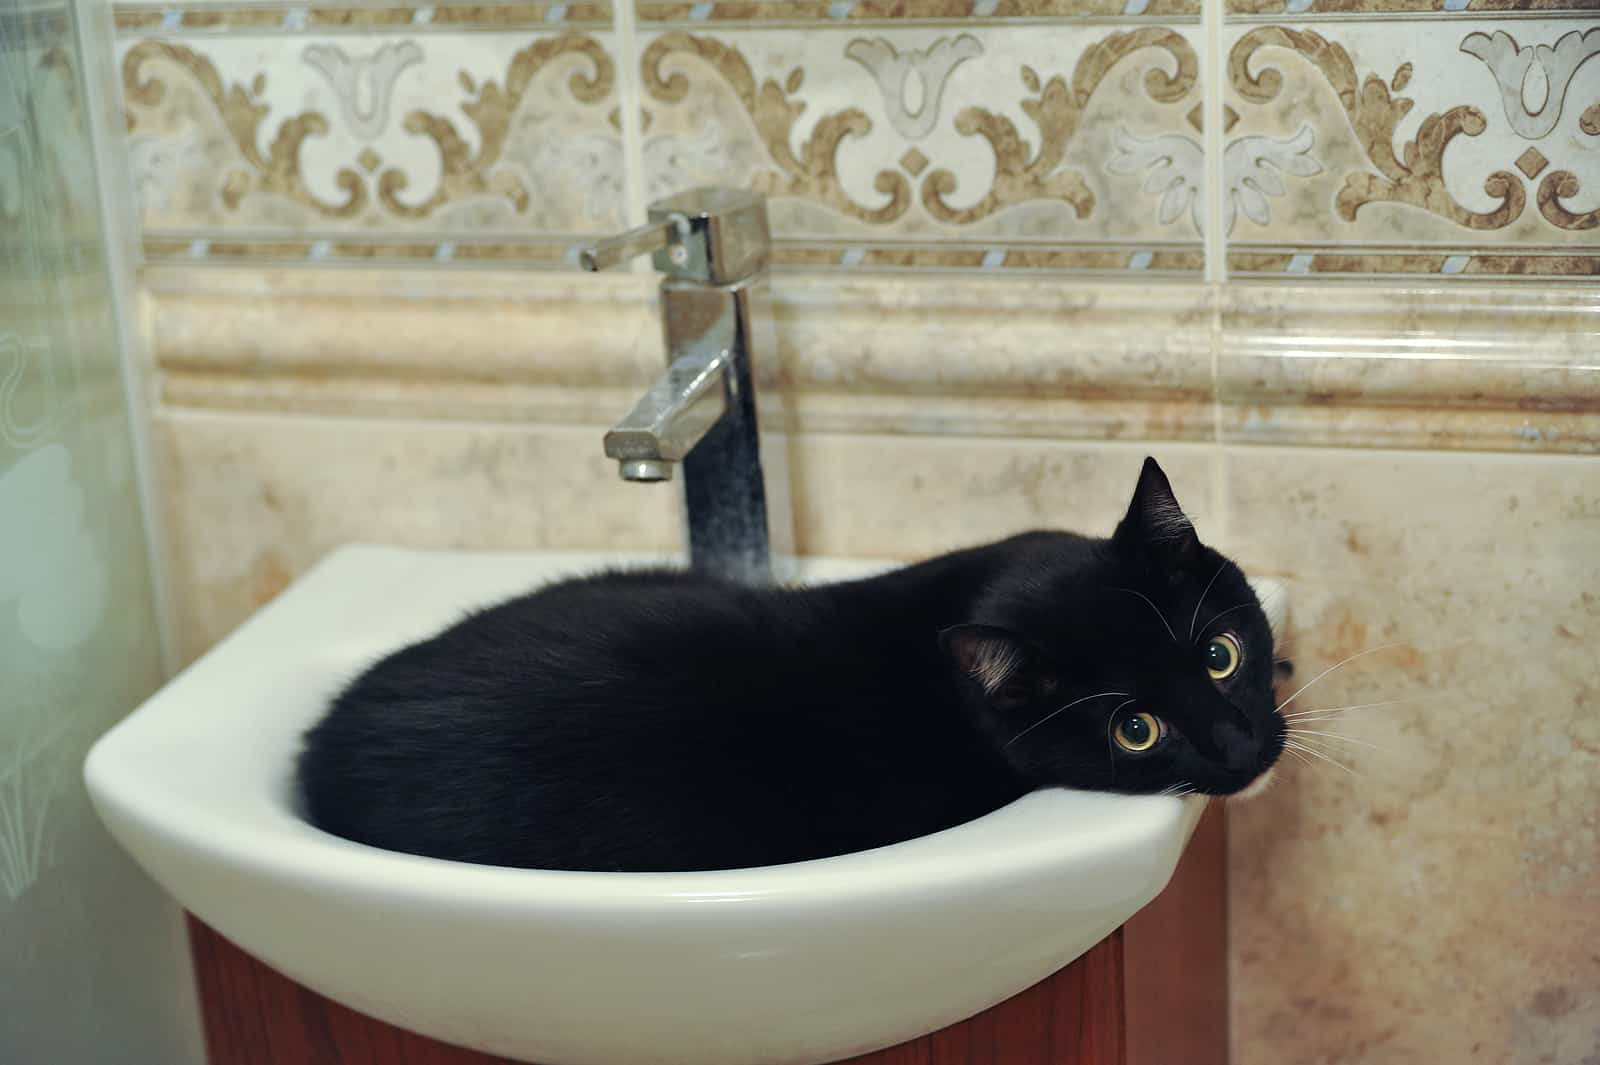 why do cats like to sleep in sinks